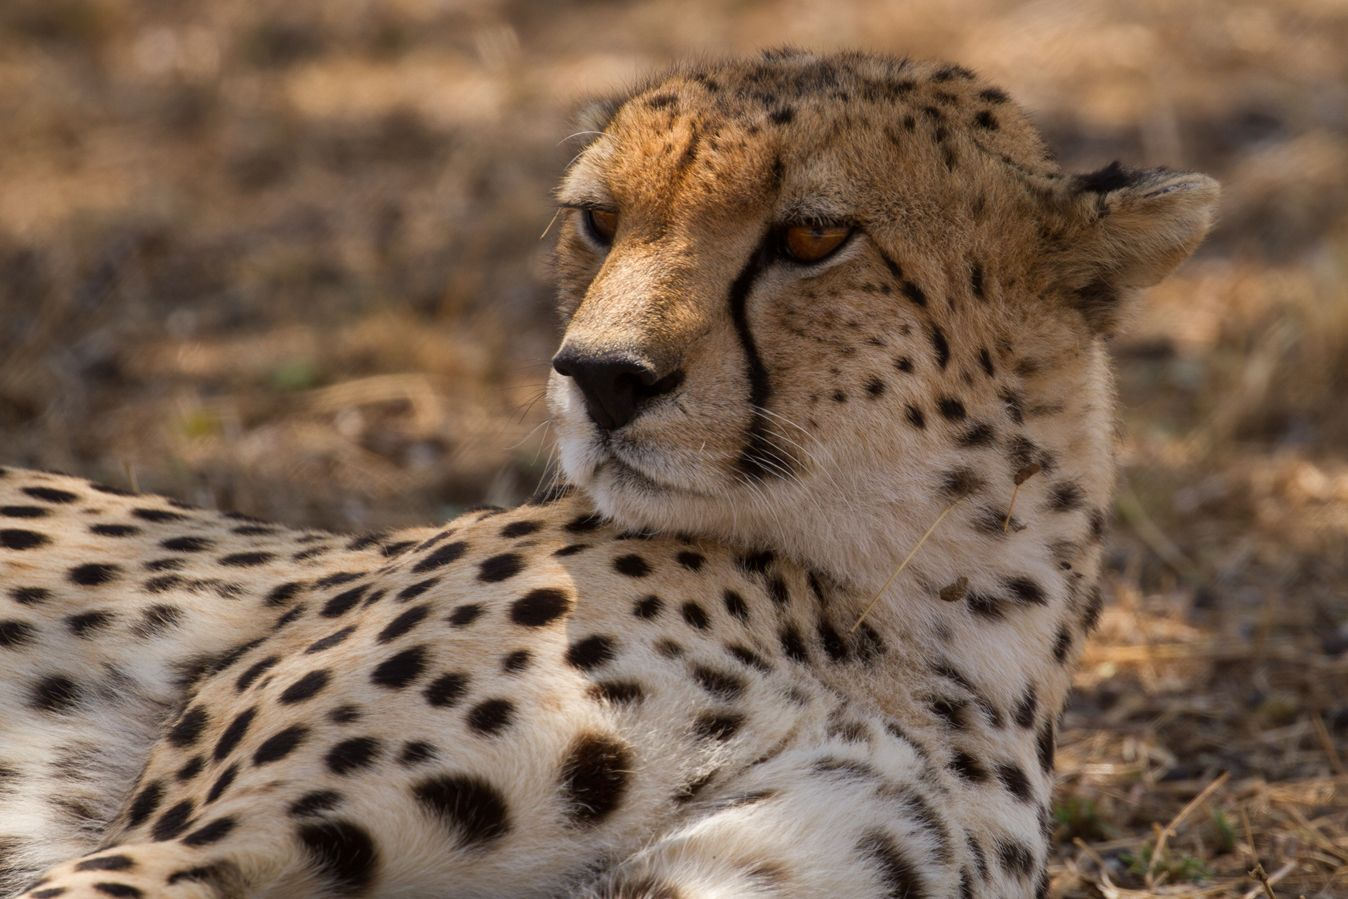 APW's human-wildlife conflict prevention work protects lions, cheetahs, and leopards in northern Tanzania.